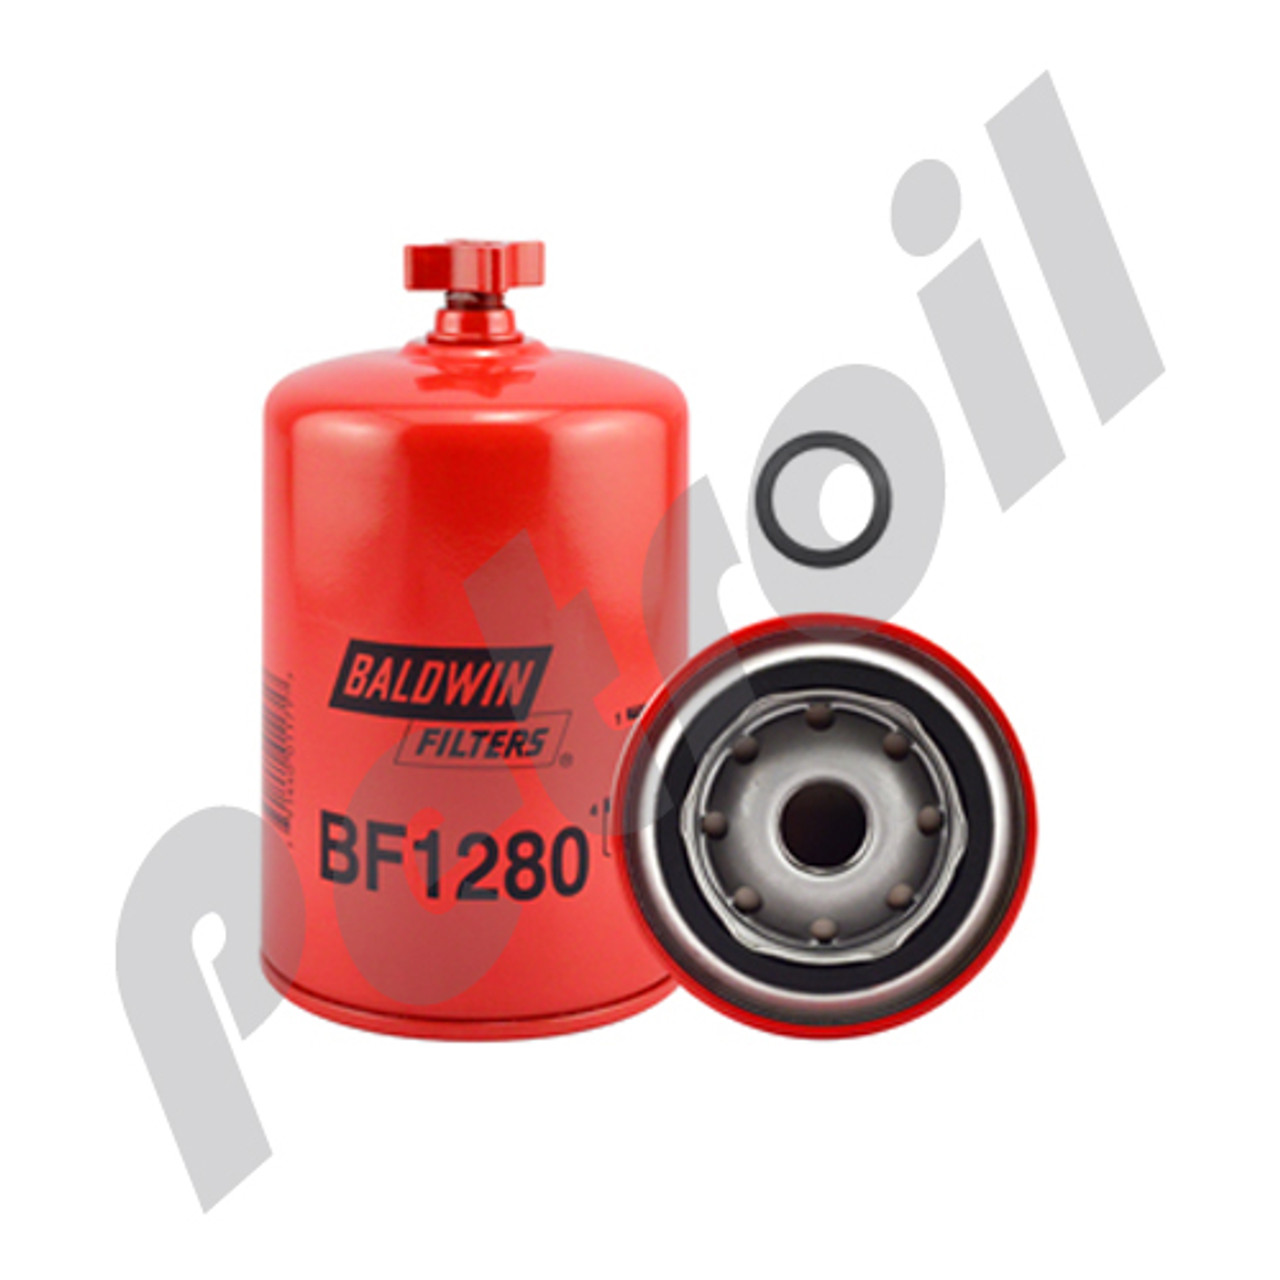 bf1280 baldwin fuel filter spin on freightliner/cummins 3925274 psc410  fs1280 33357 wk940/7 p551329